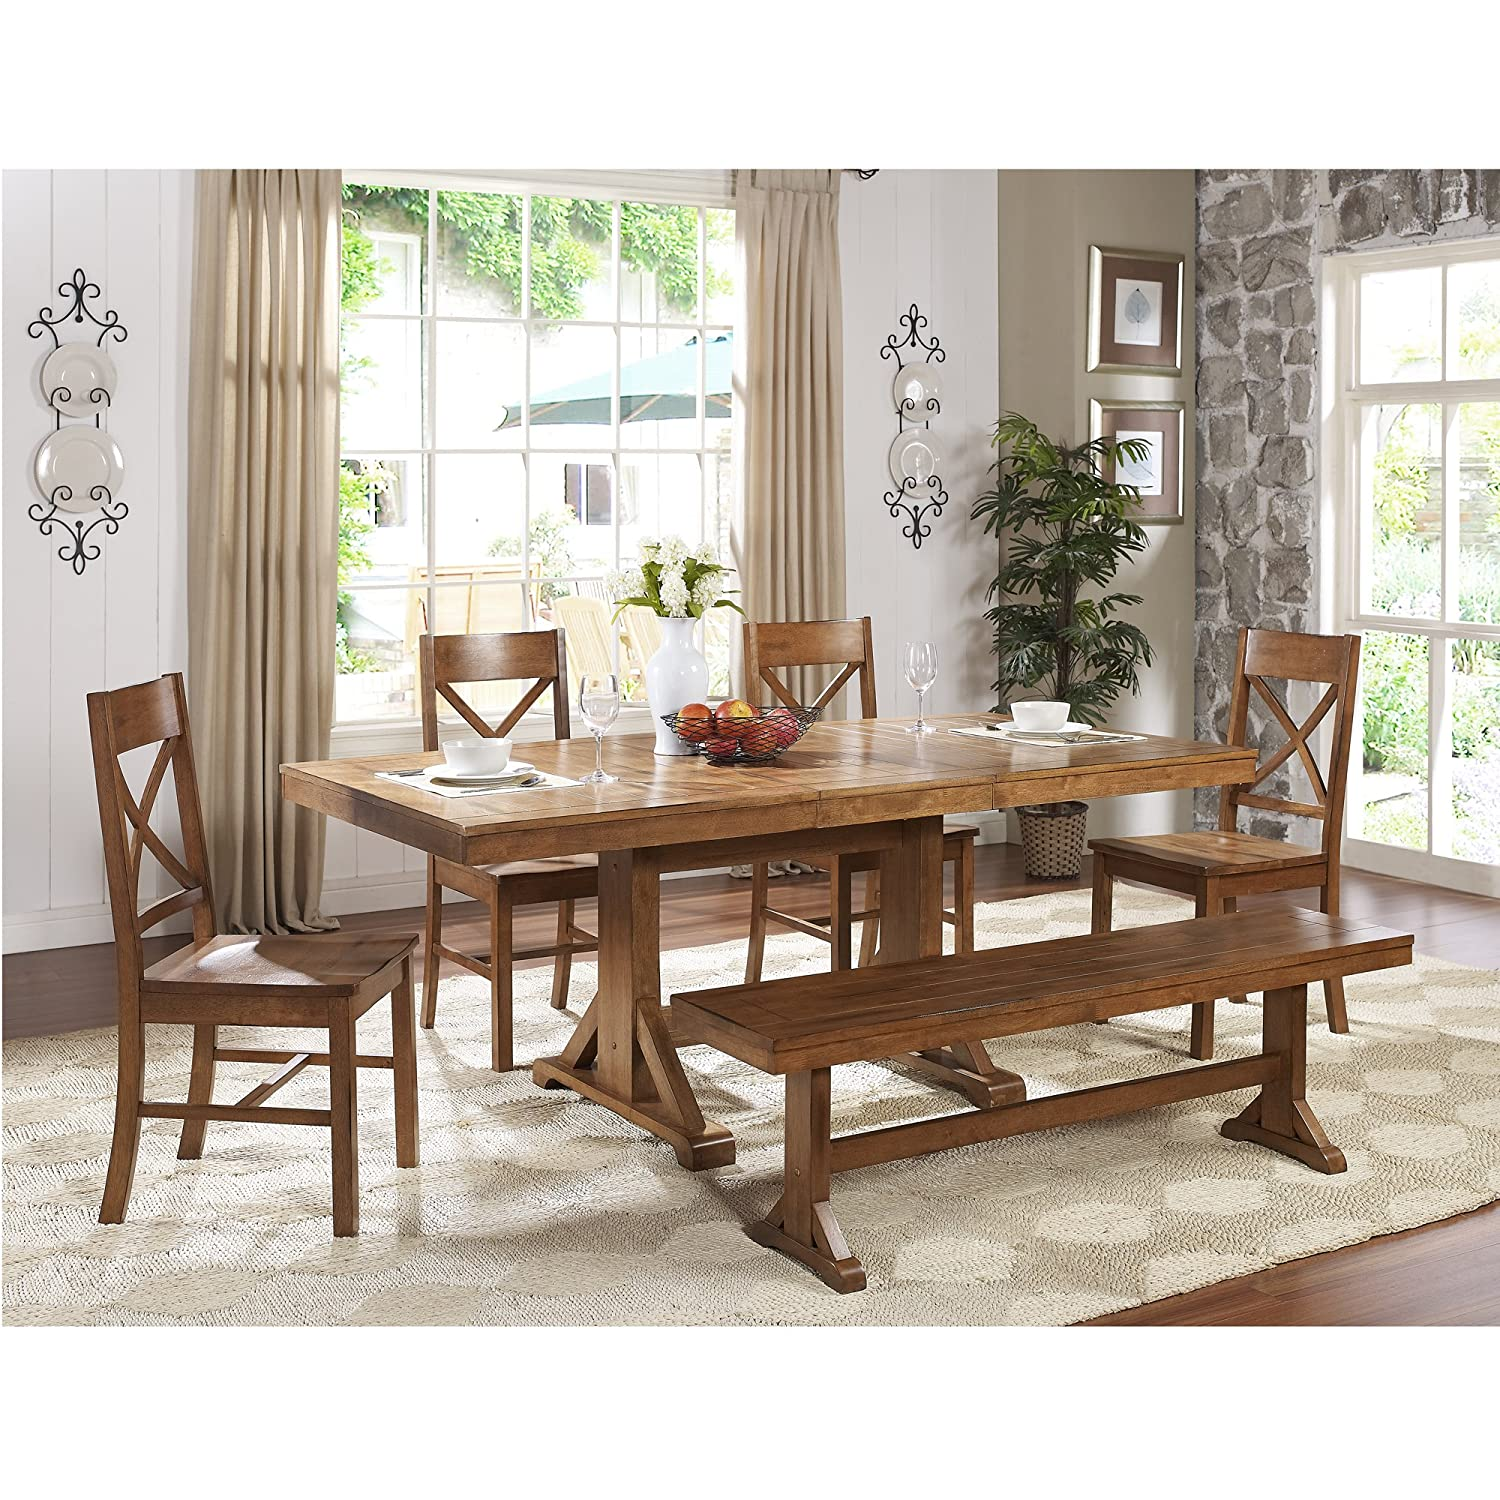 Amazon WE Furniture Solid Wood Brown Dining Bench Kitchen